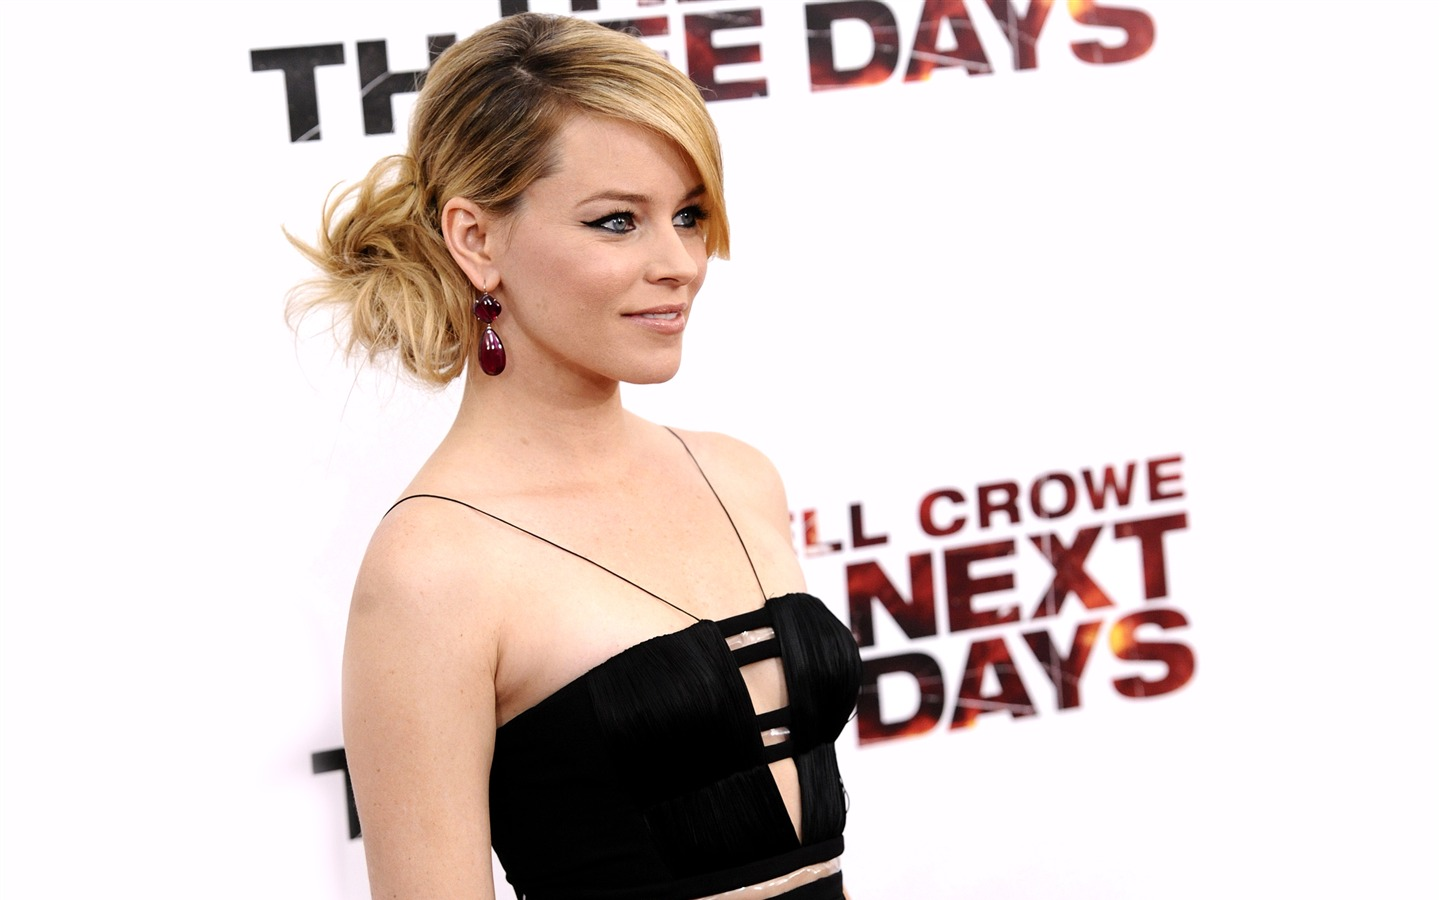 Elizabeth Banks #002 - 1440x900 Wallpapers Pictures Photos Images